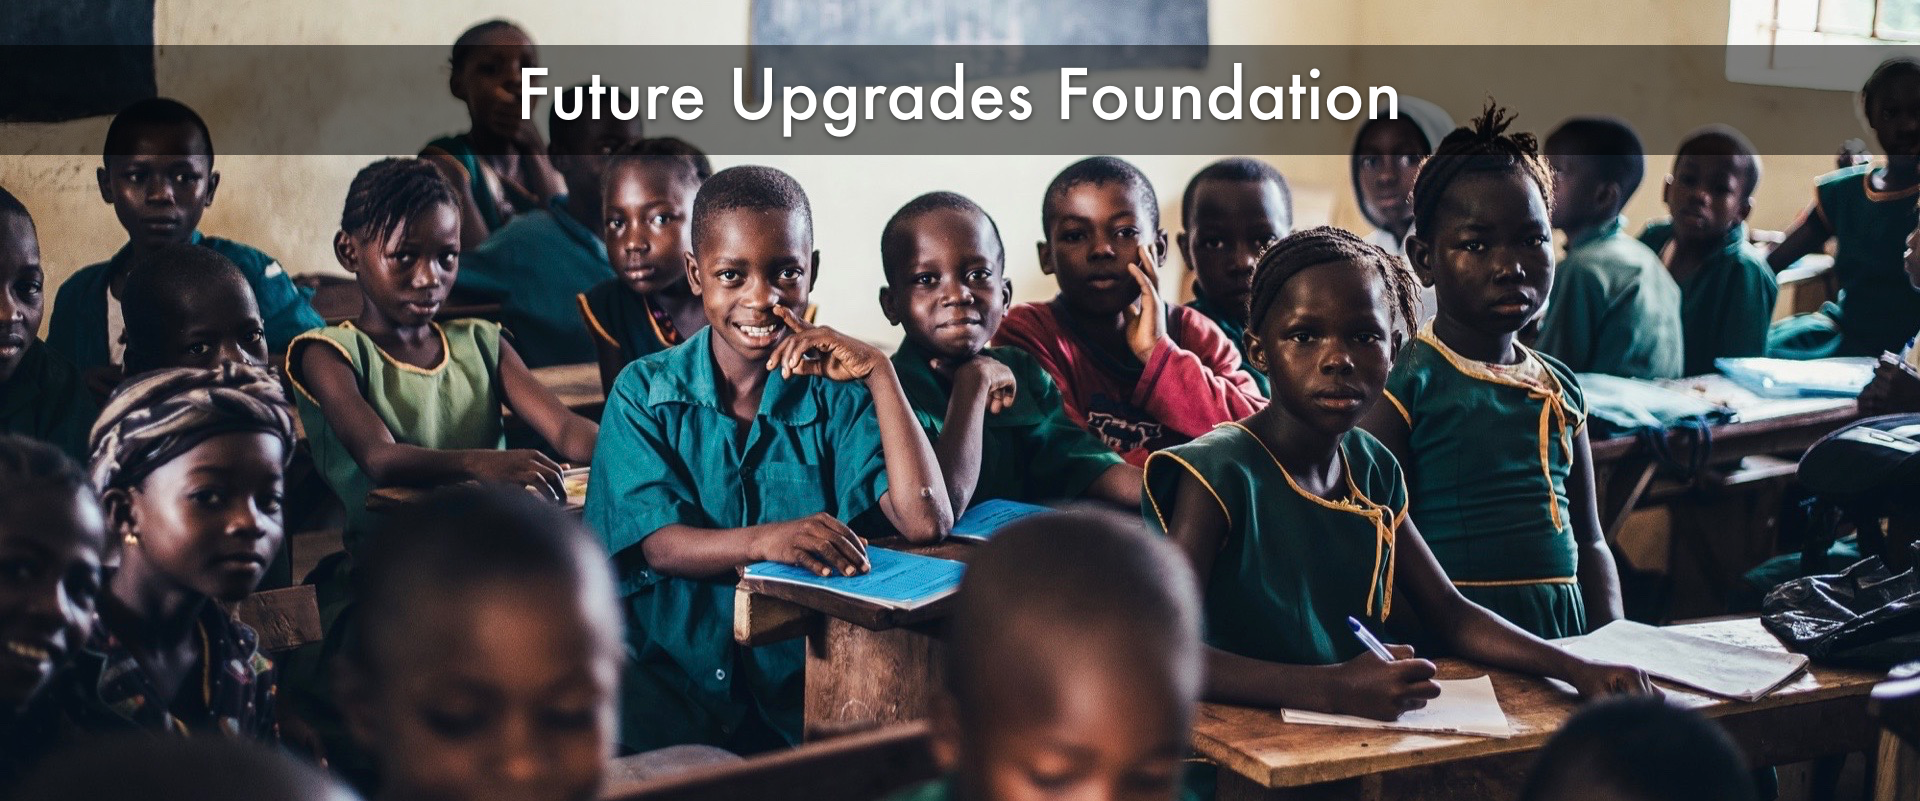 Future Upgrades Foundation